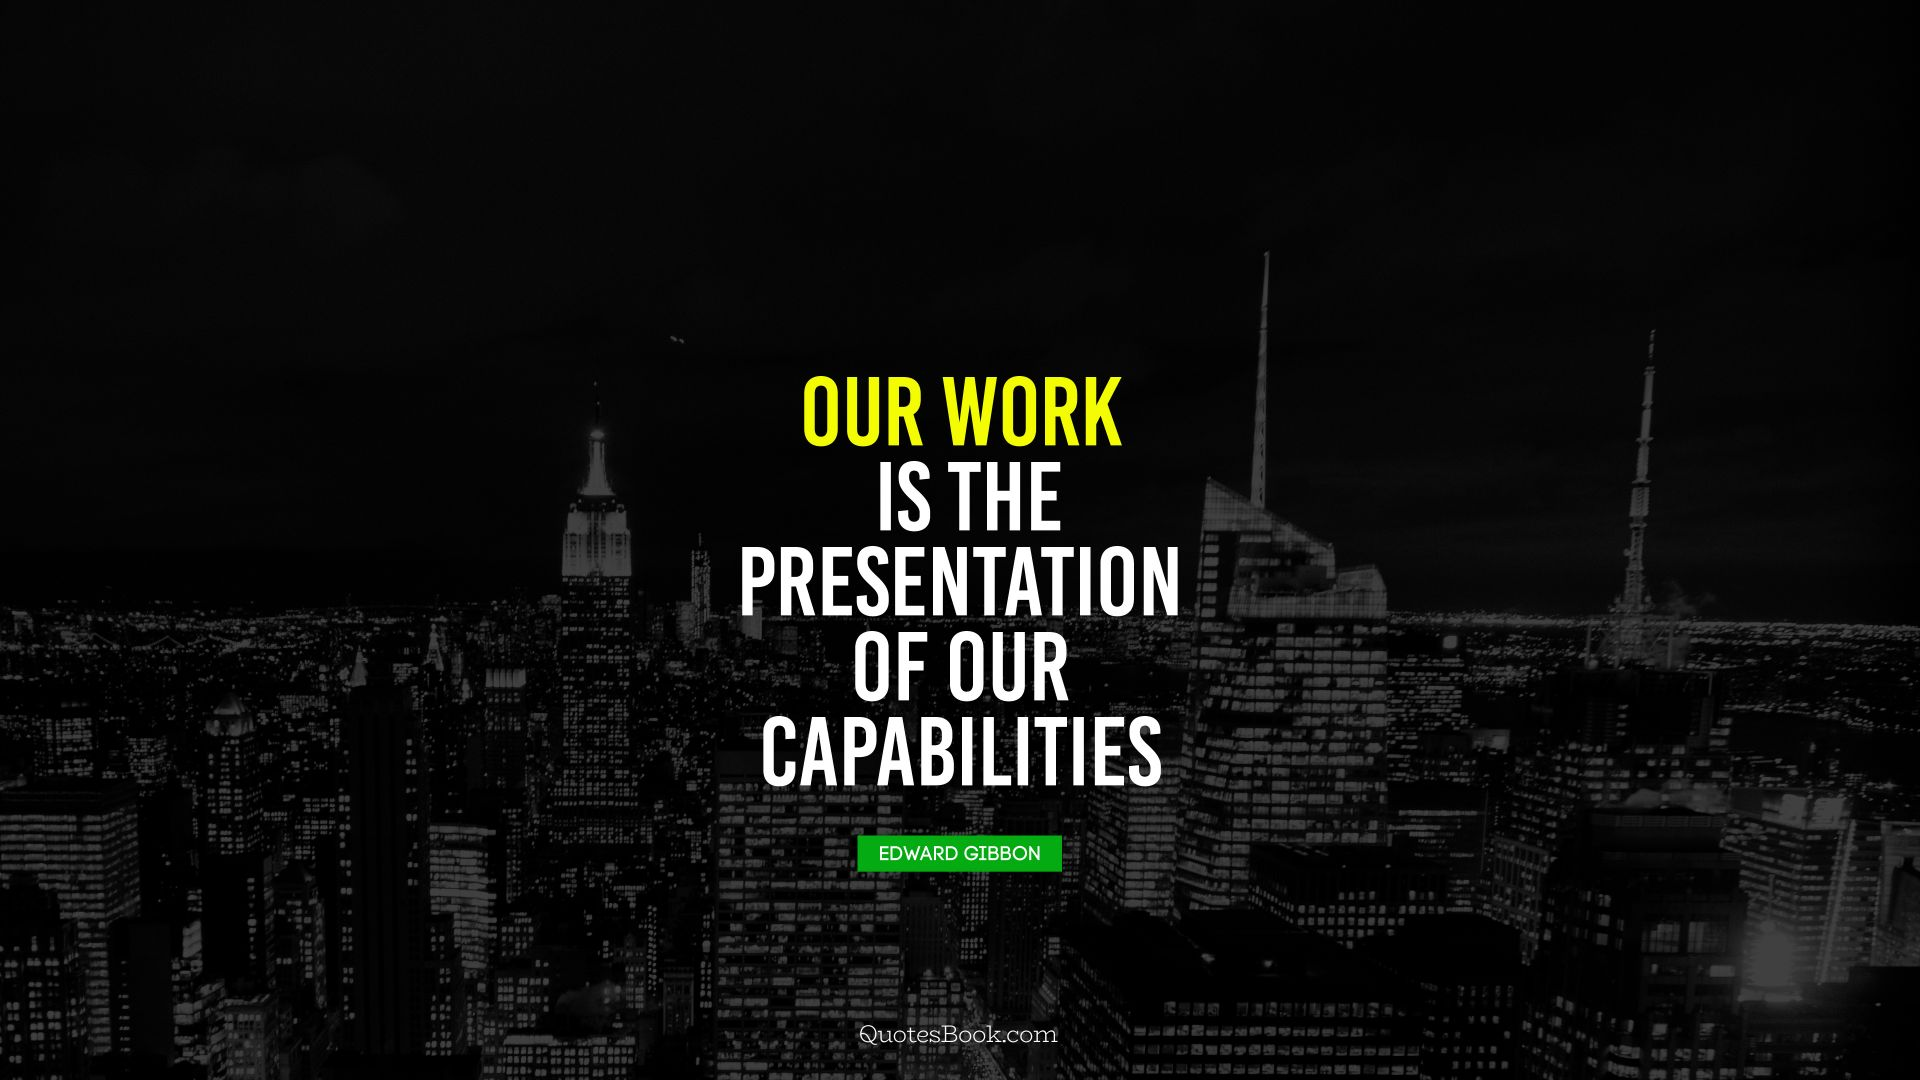 Our work is the presentation 